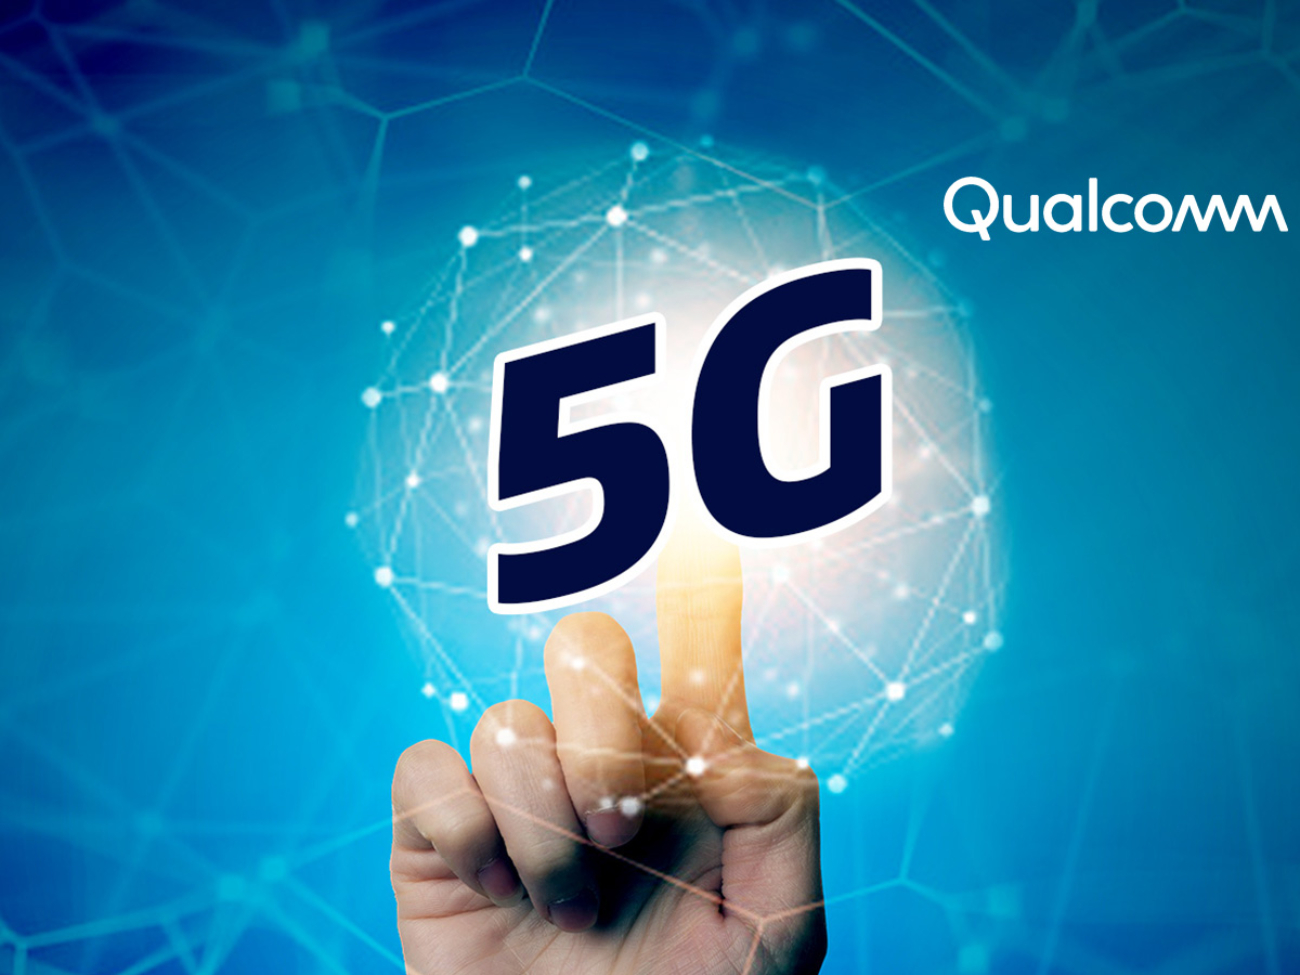 Qualcomm-and-EE-Bring-5G-to-the-UK-with-the-Launch-of-the-First-Commercial-5G-Service